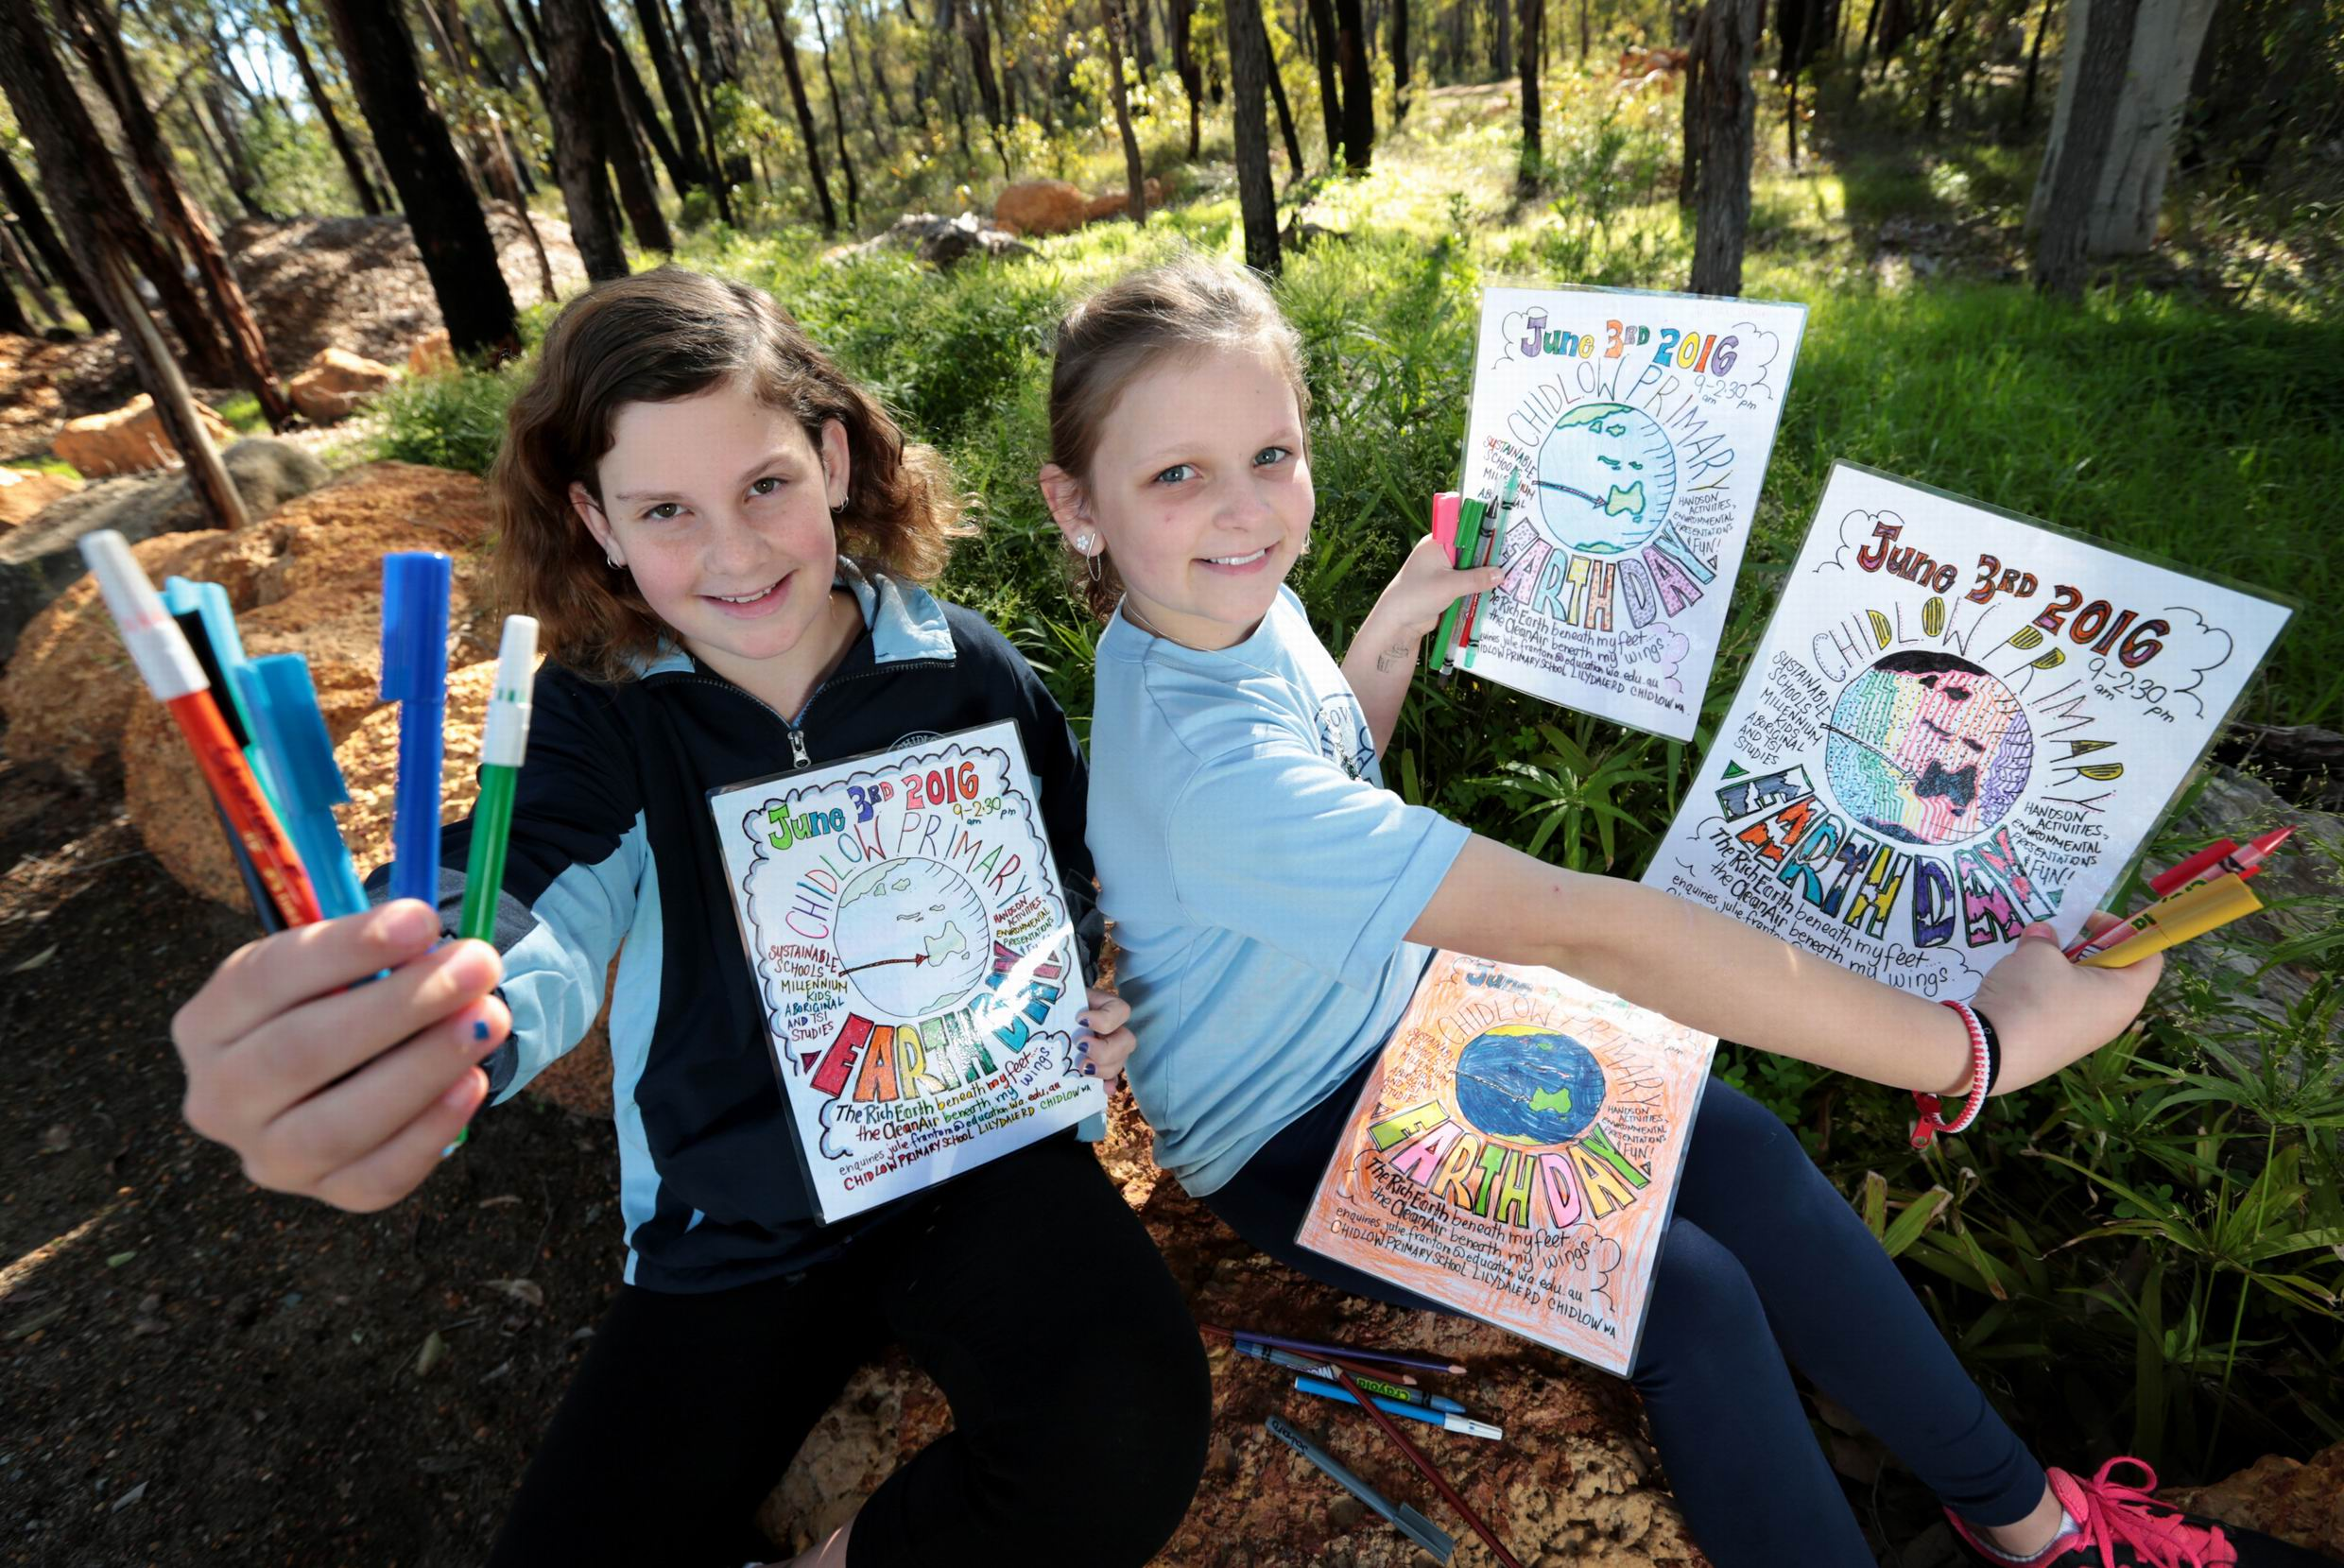 L-R: Taya Coverley (10) of Chidlow and Charlotte Ferguson (9) of Wundowie making posters for Earth Day.  Earth Day fun at Chidlow Primary School.